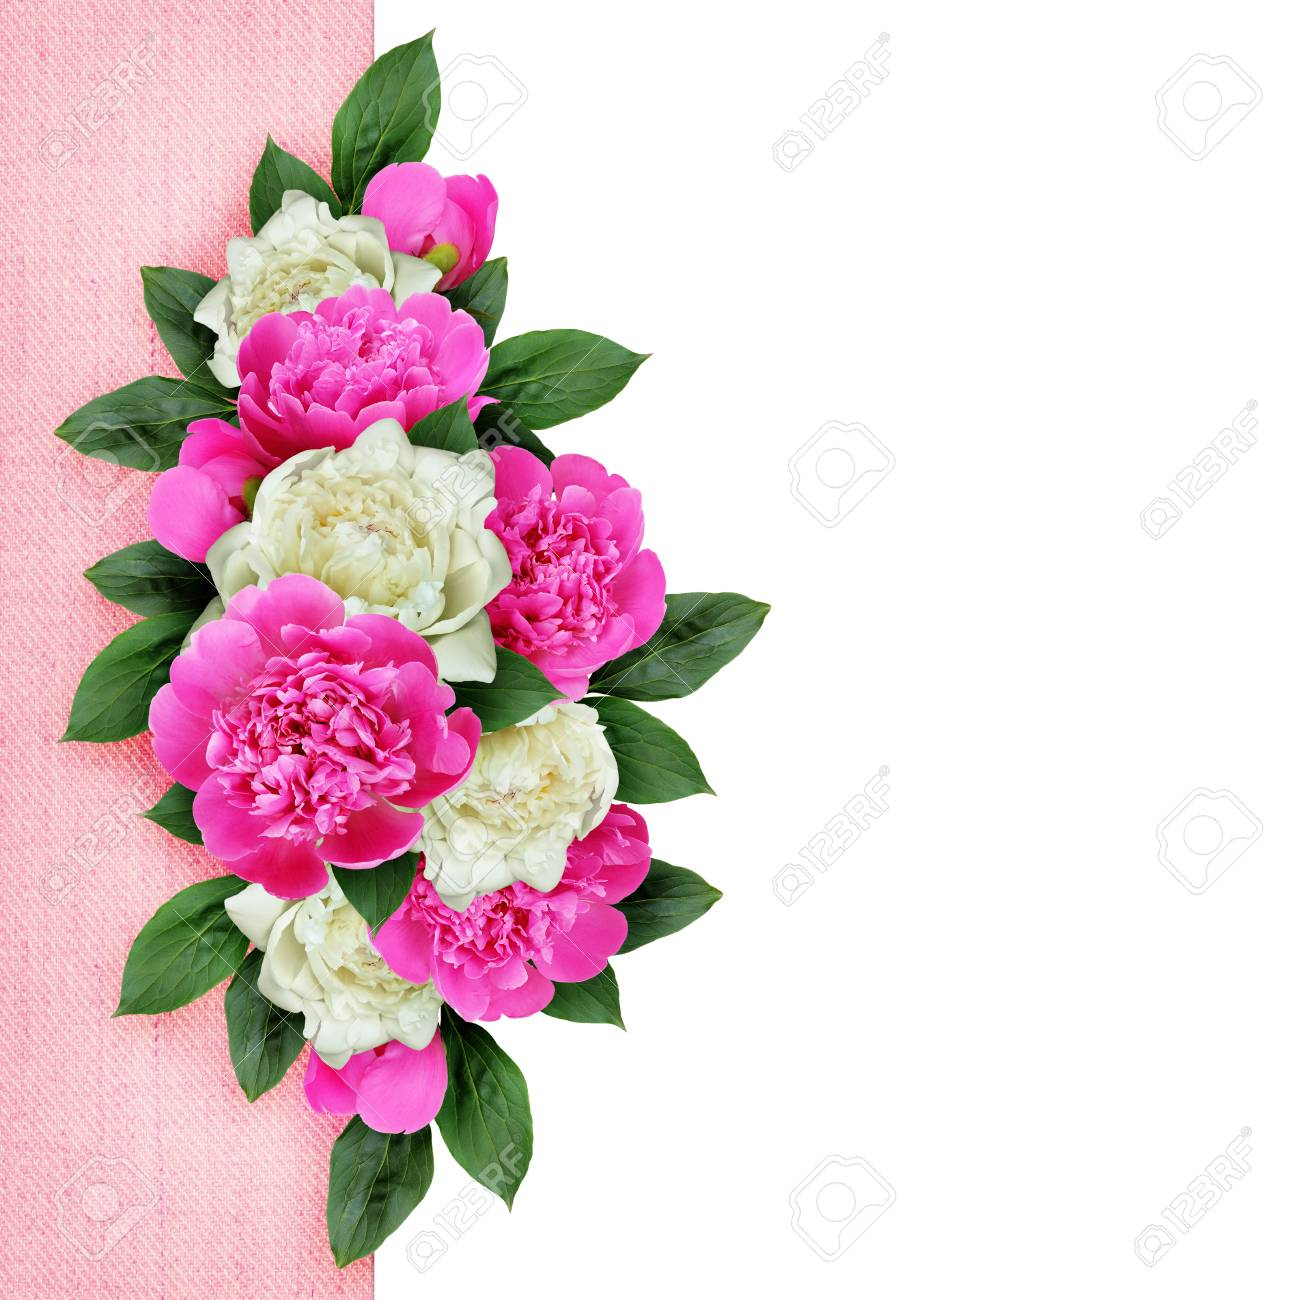 Pink And White Peonies Flowers Arrangement On White And Pink Stock